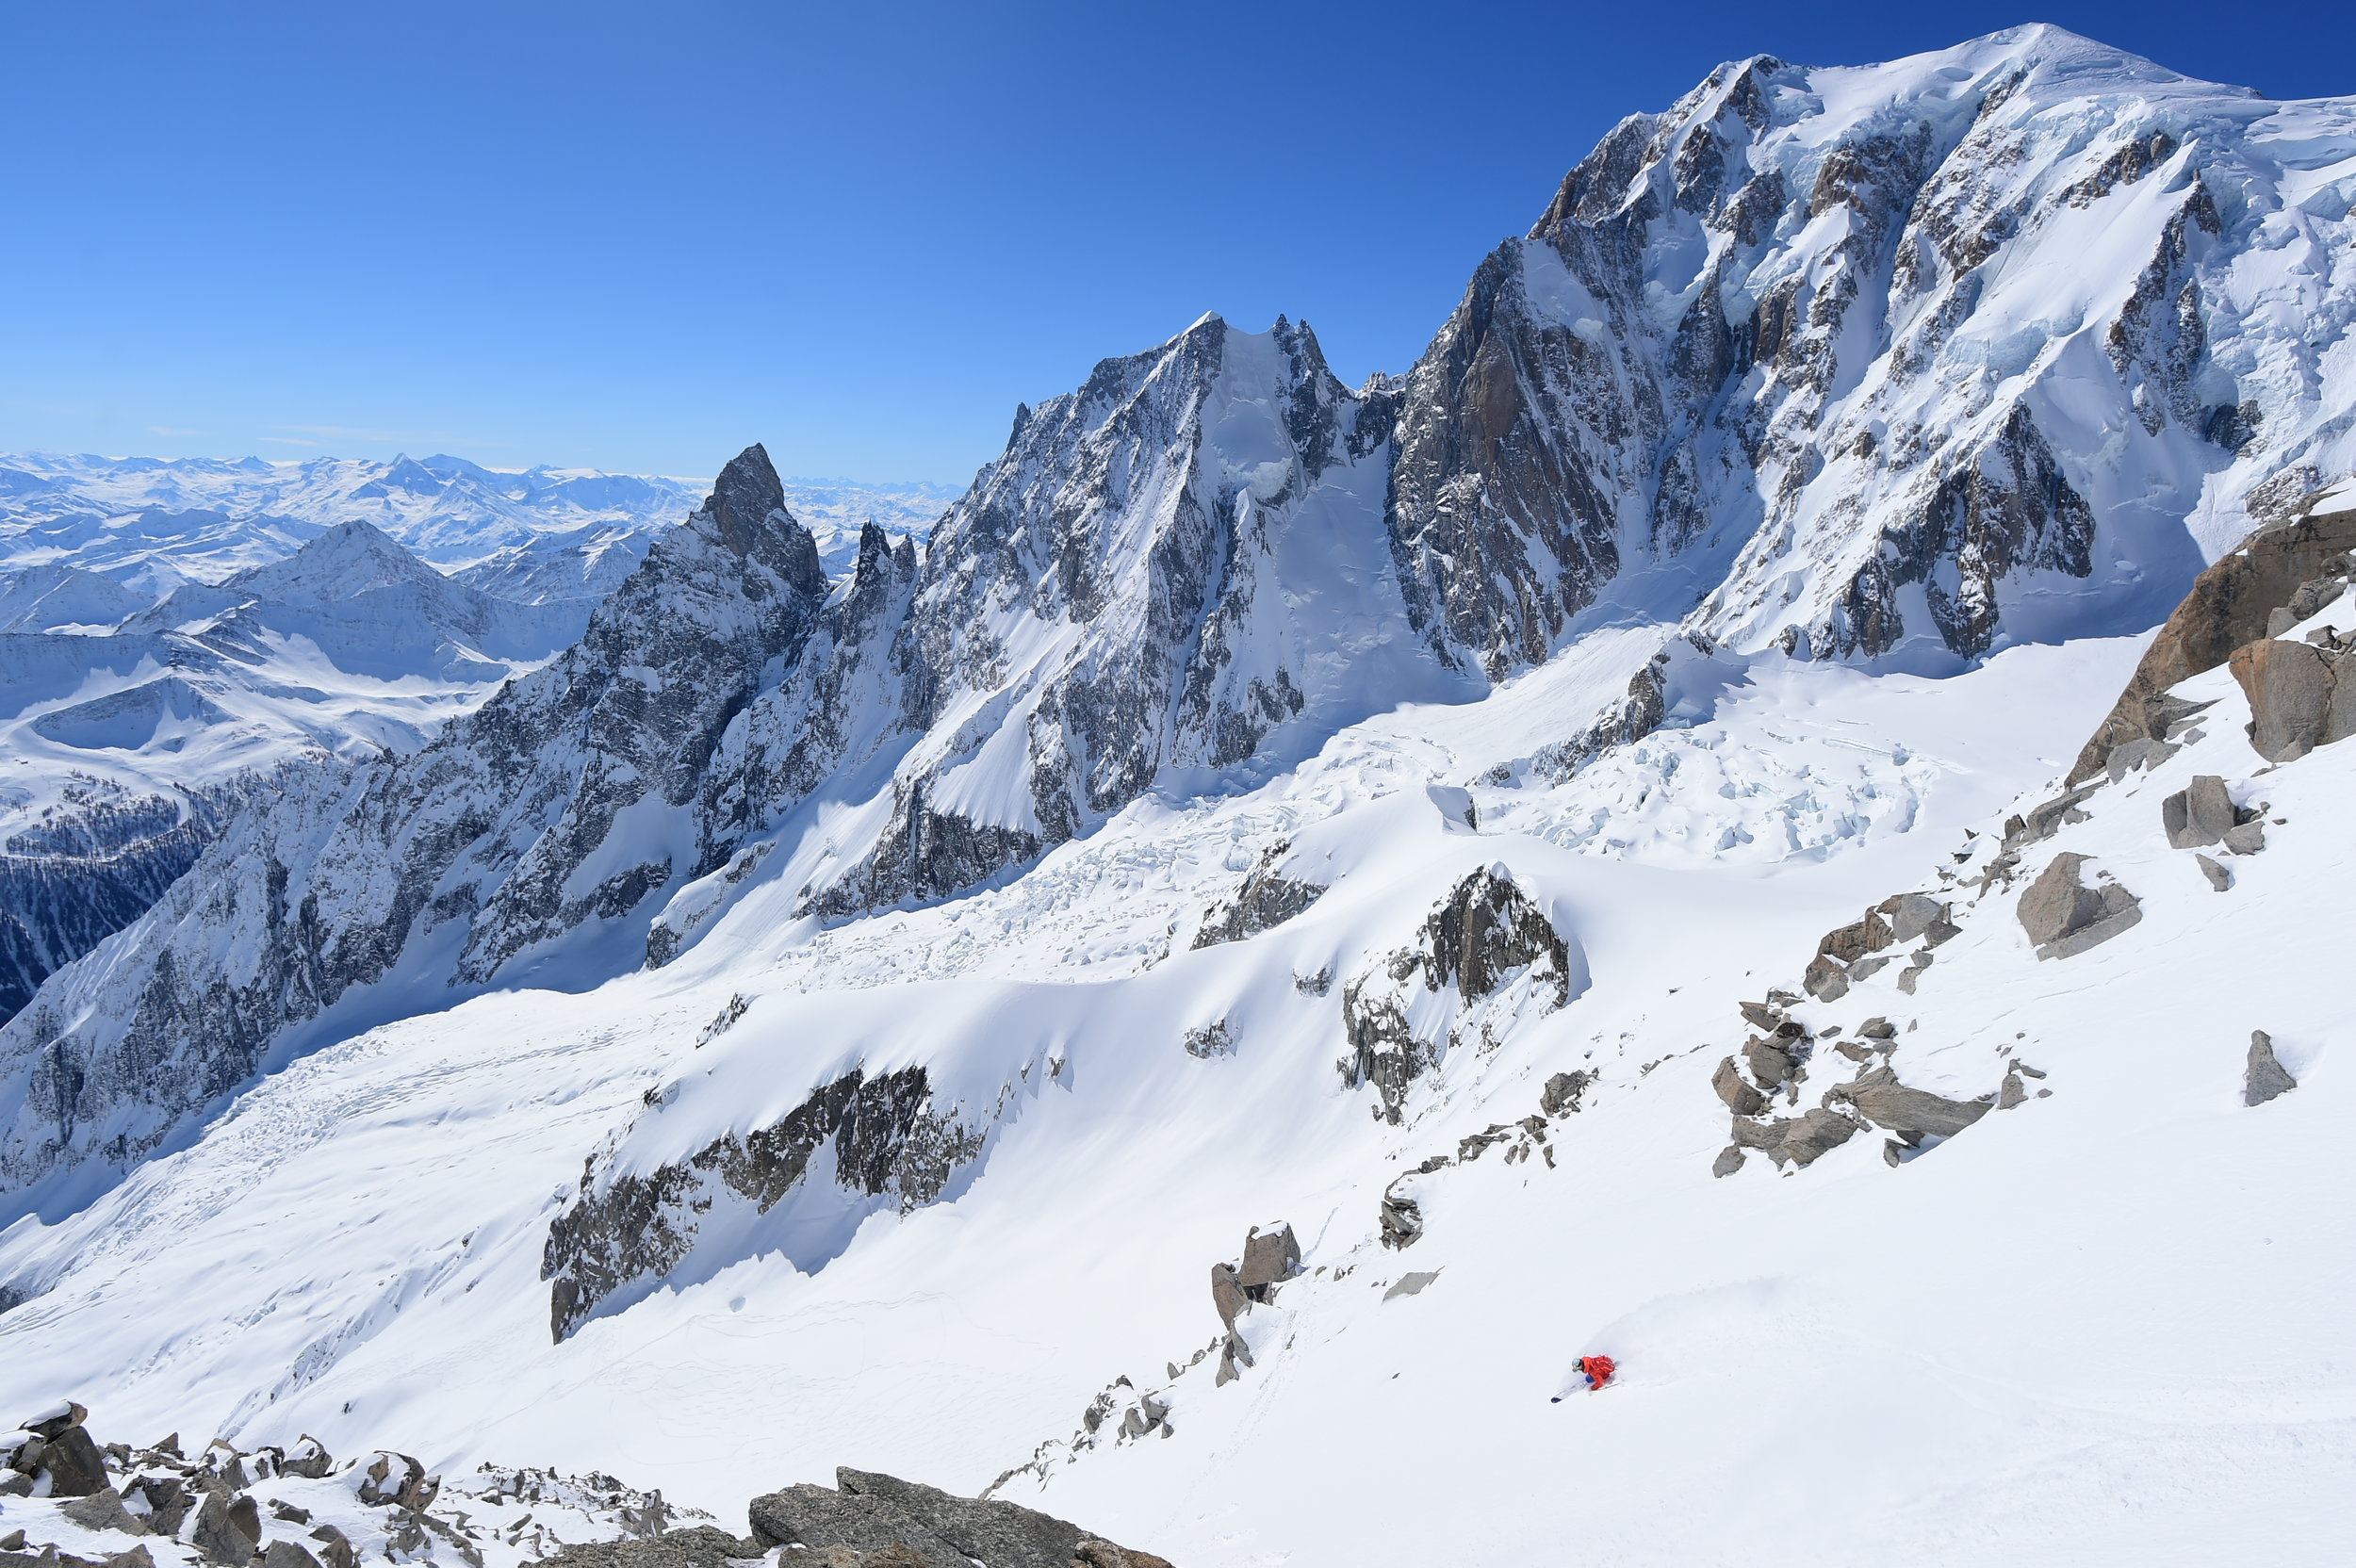 Josh Daiek skiing down to the Brenda Glacier underneath Mont Blanc.  Photo: Mattias Fredriksson